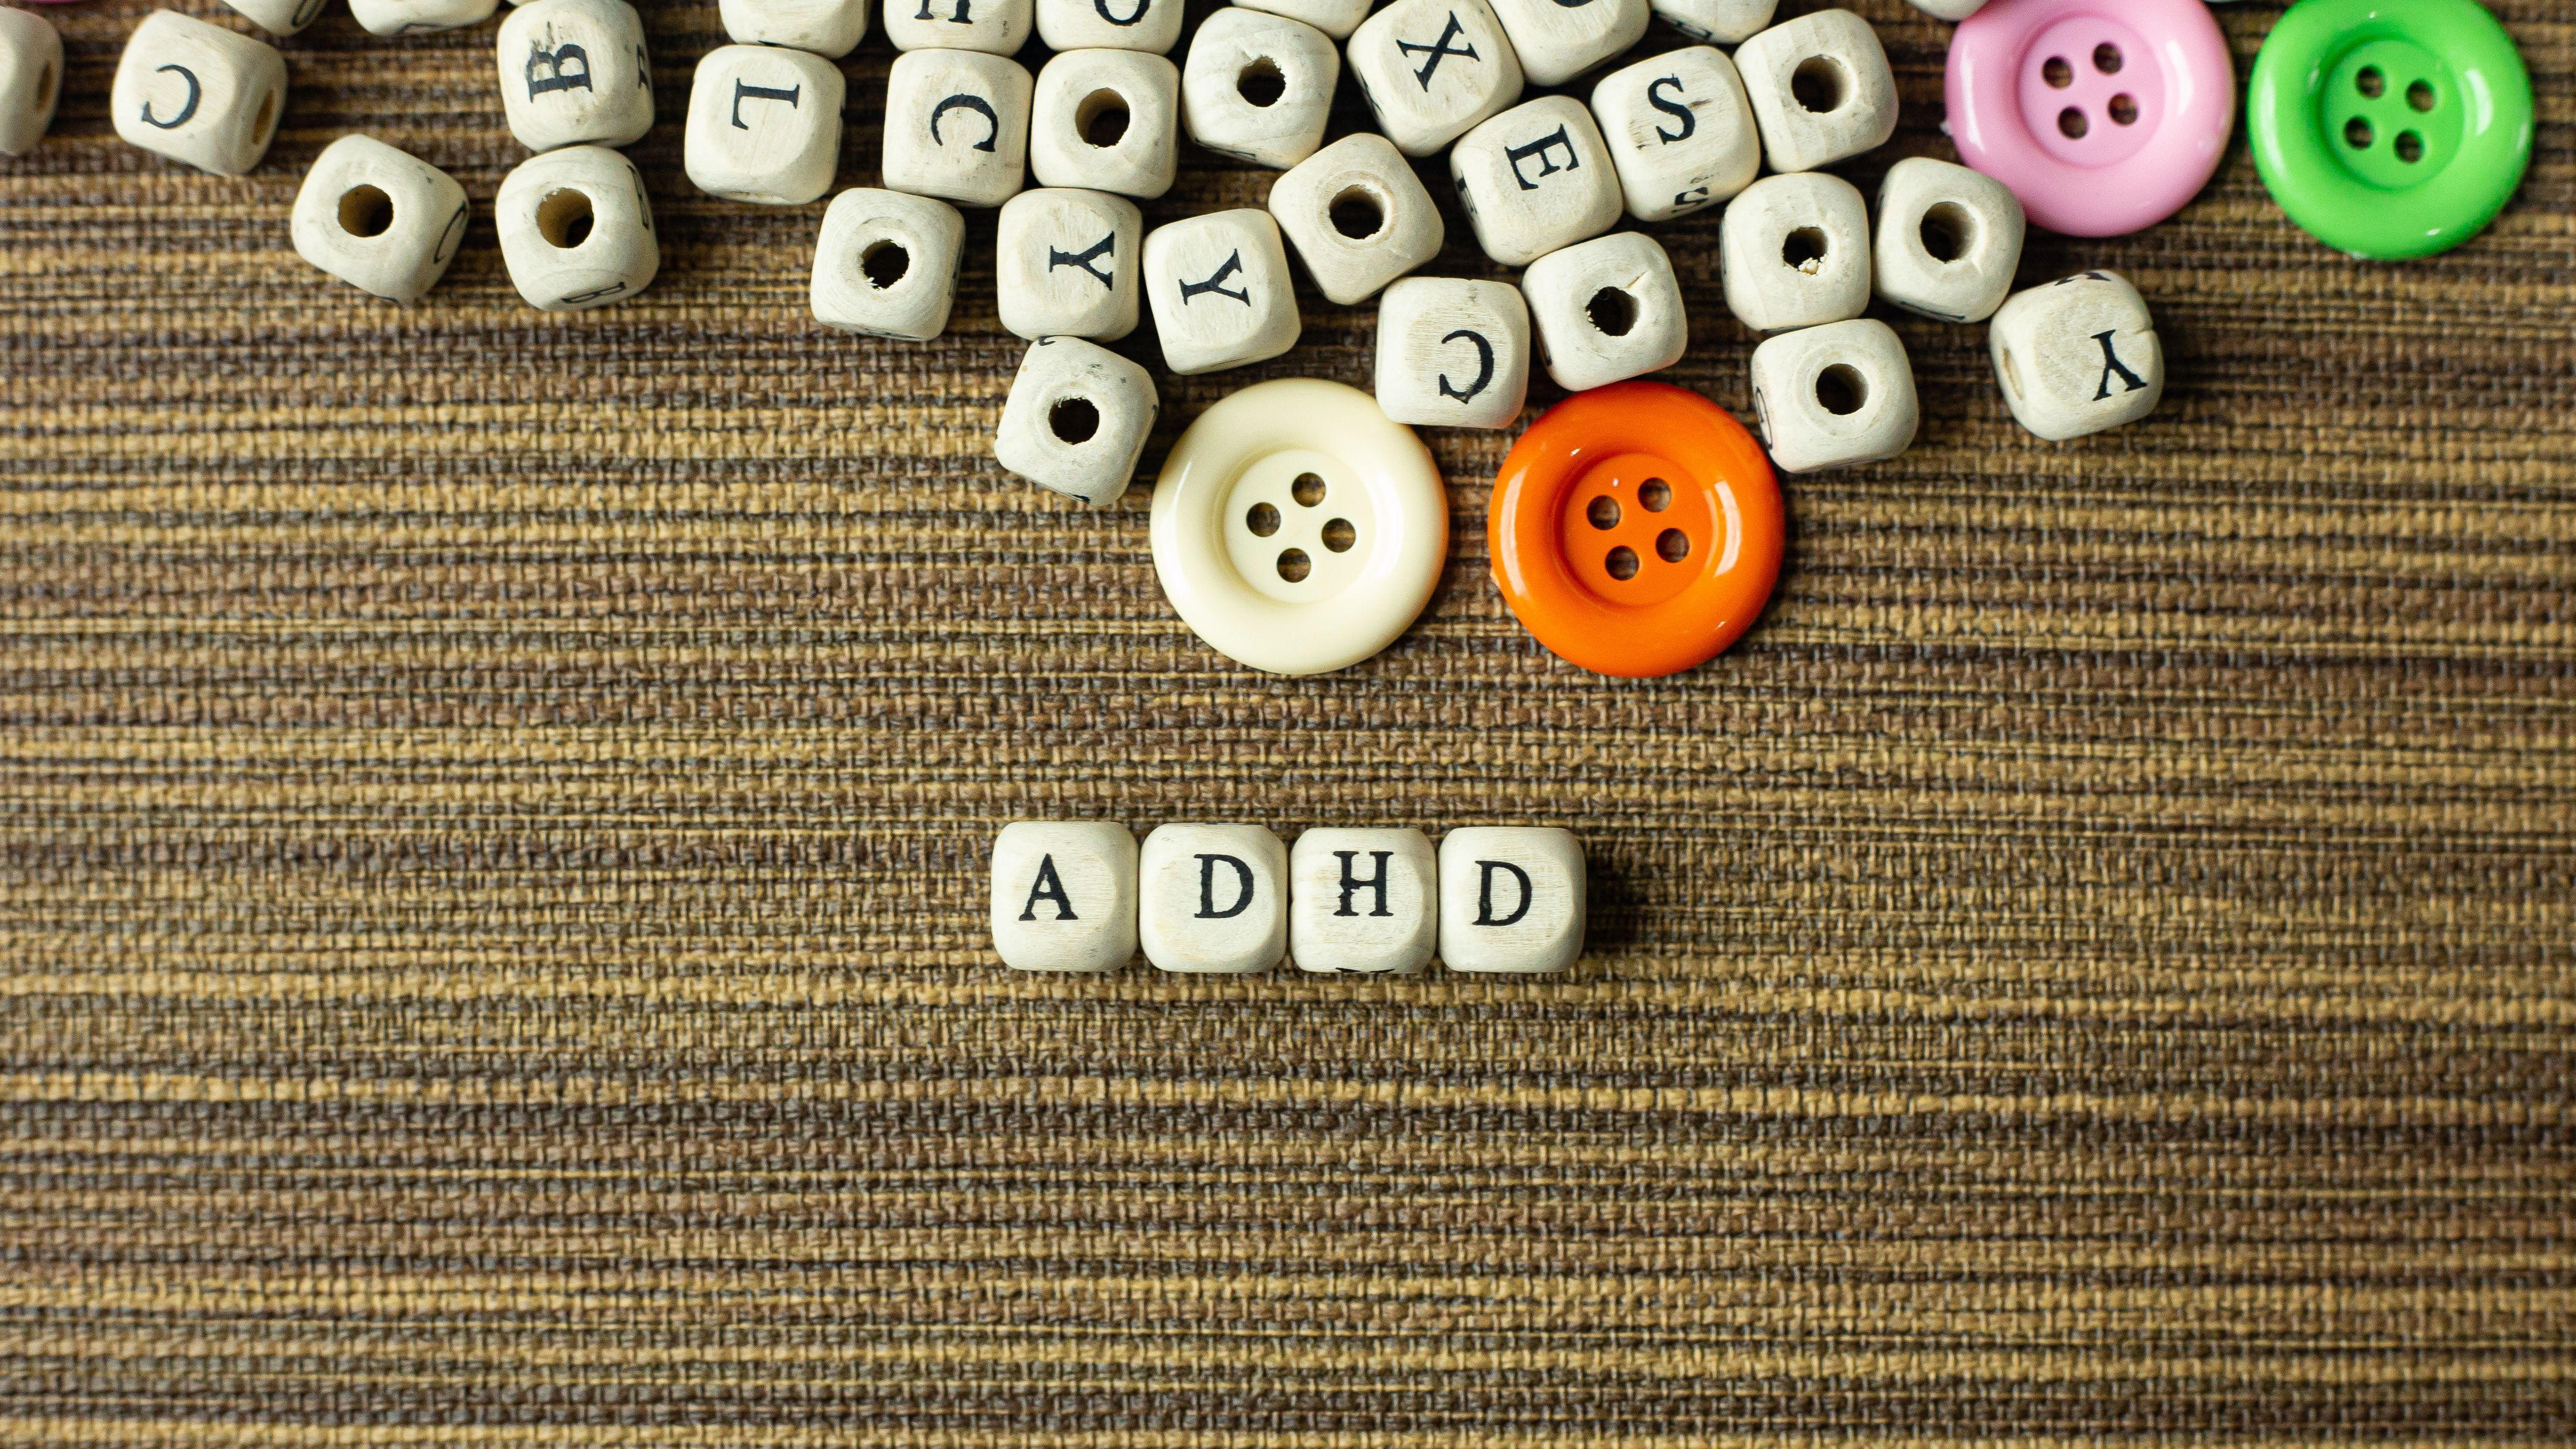 Pin On Attention Deficit Hyperactivity Disorder Counseling